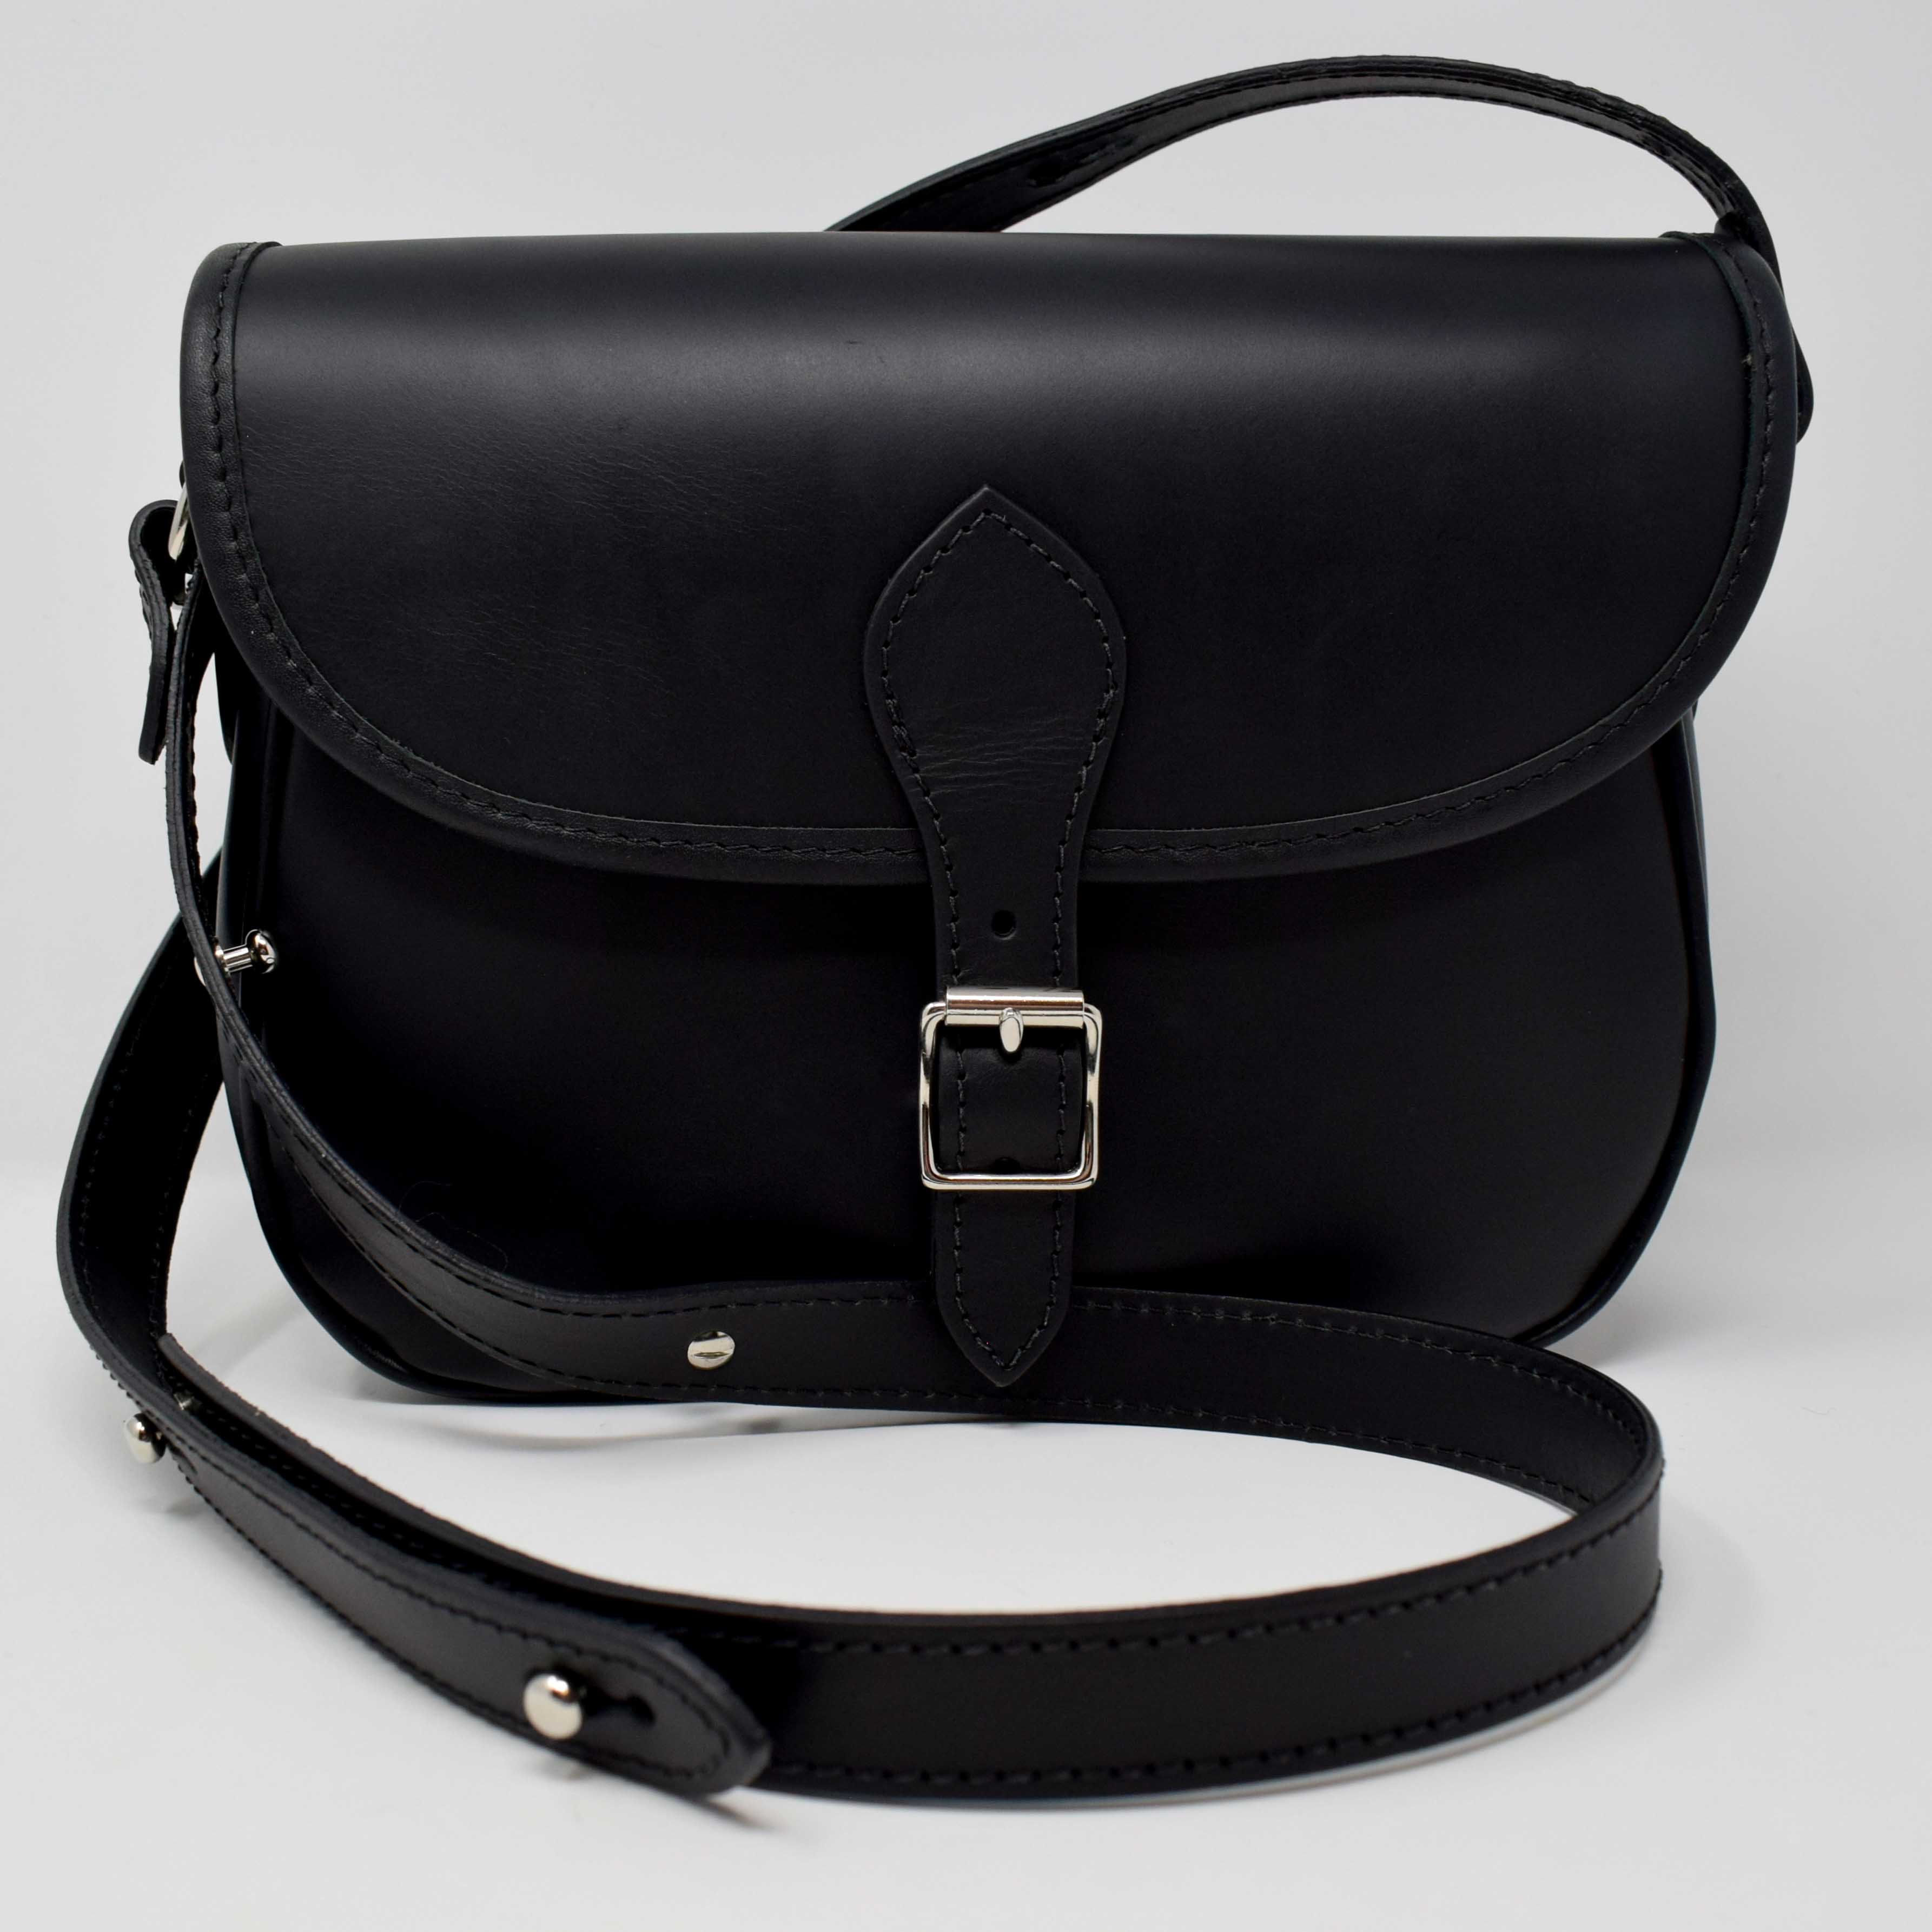 Luxury Black Leather Saddle Bag